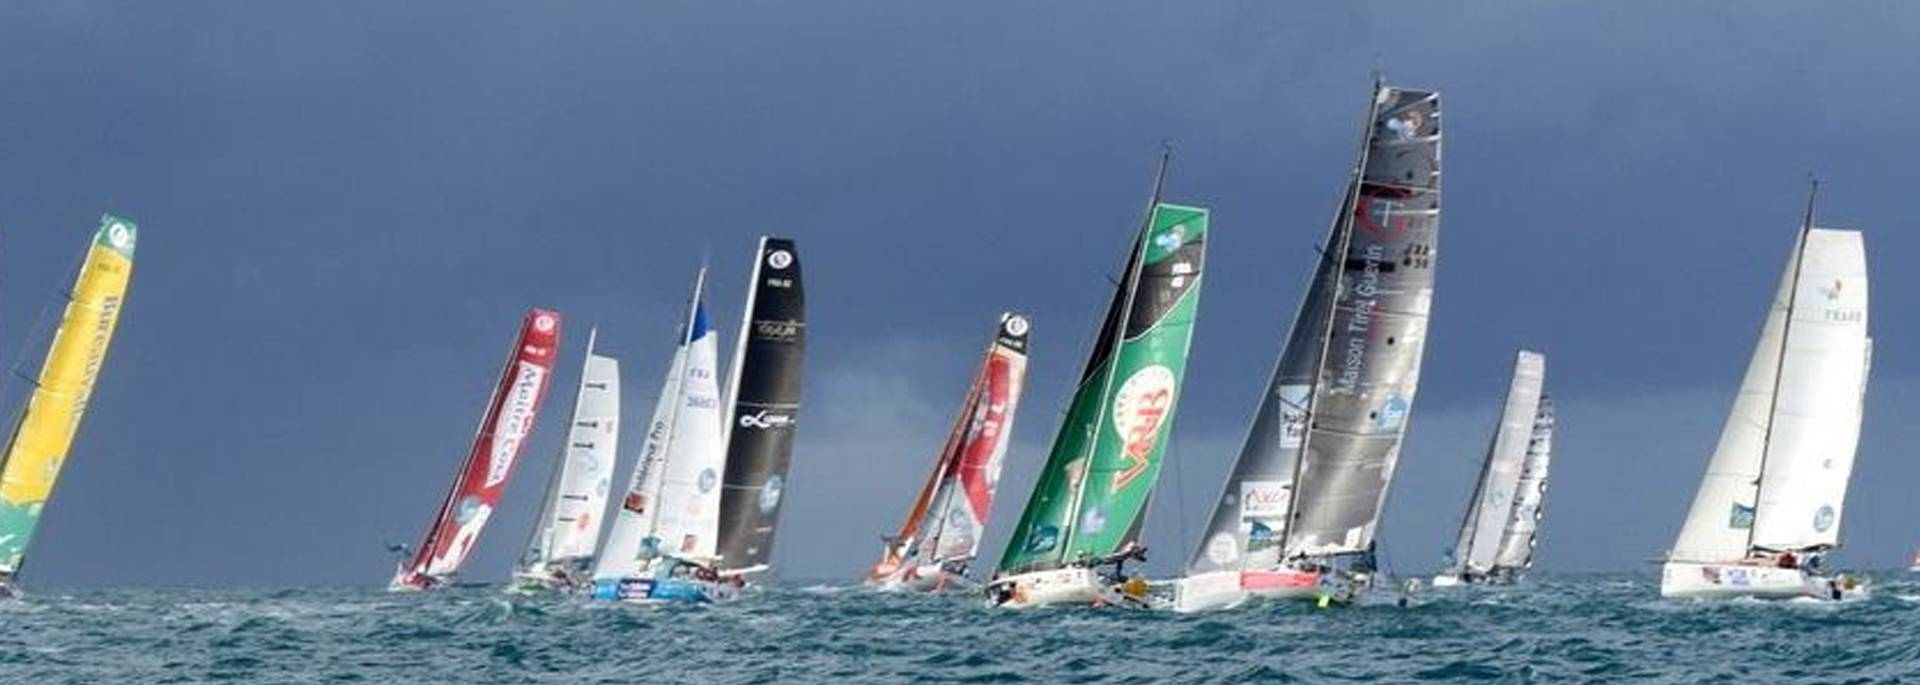 The Route du Rhum ocean race